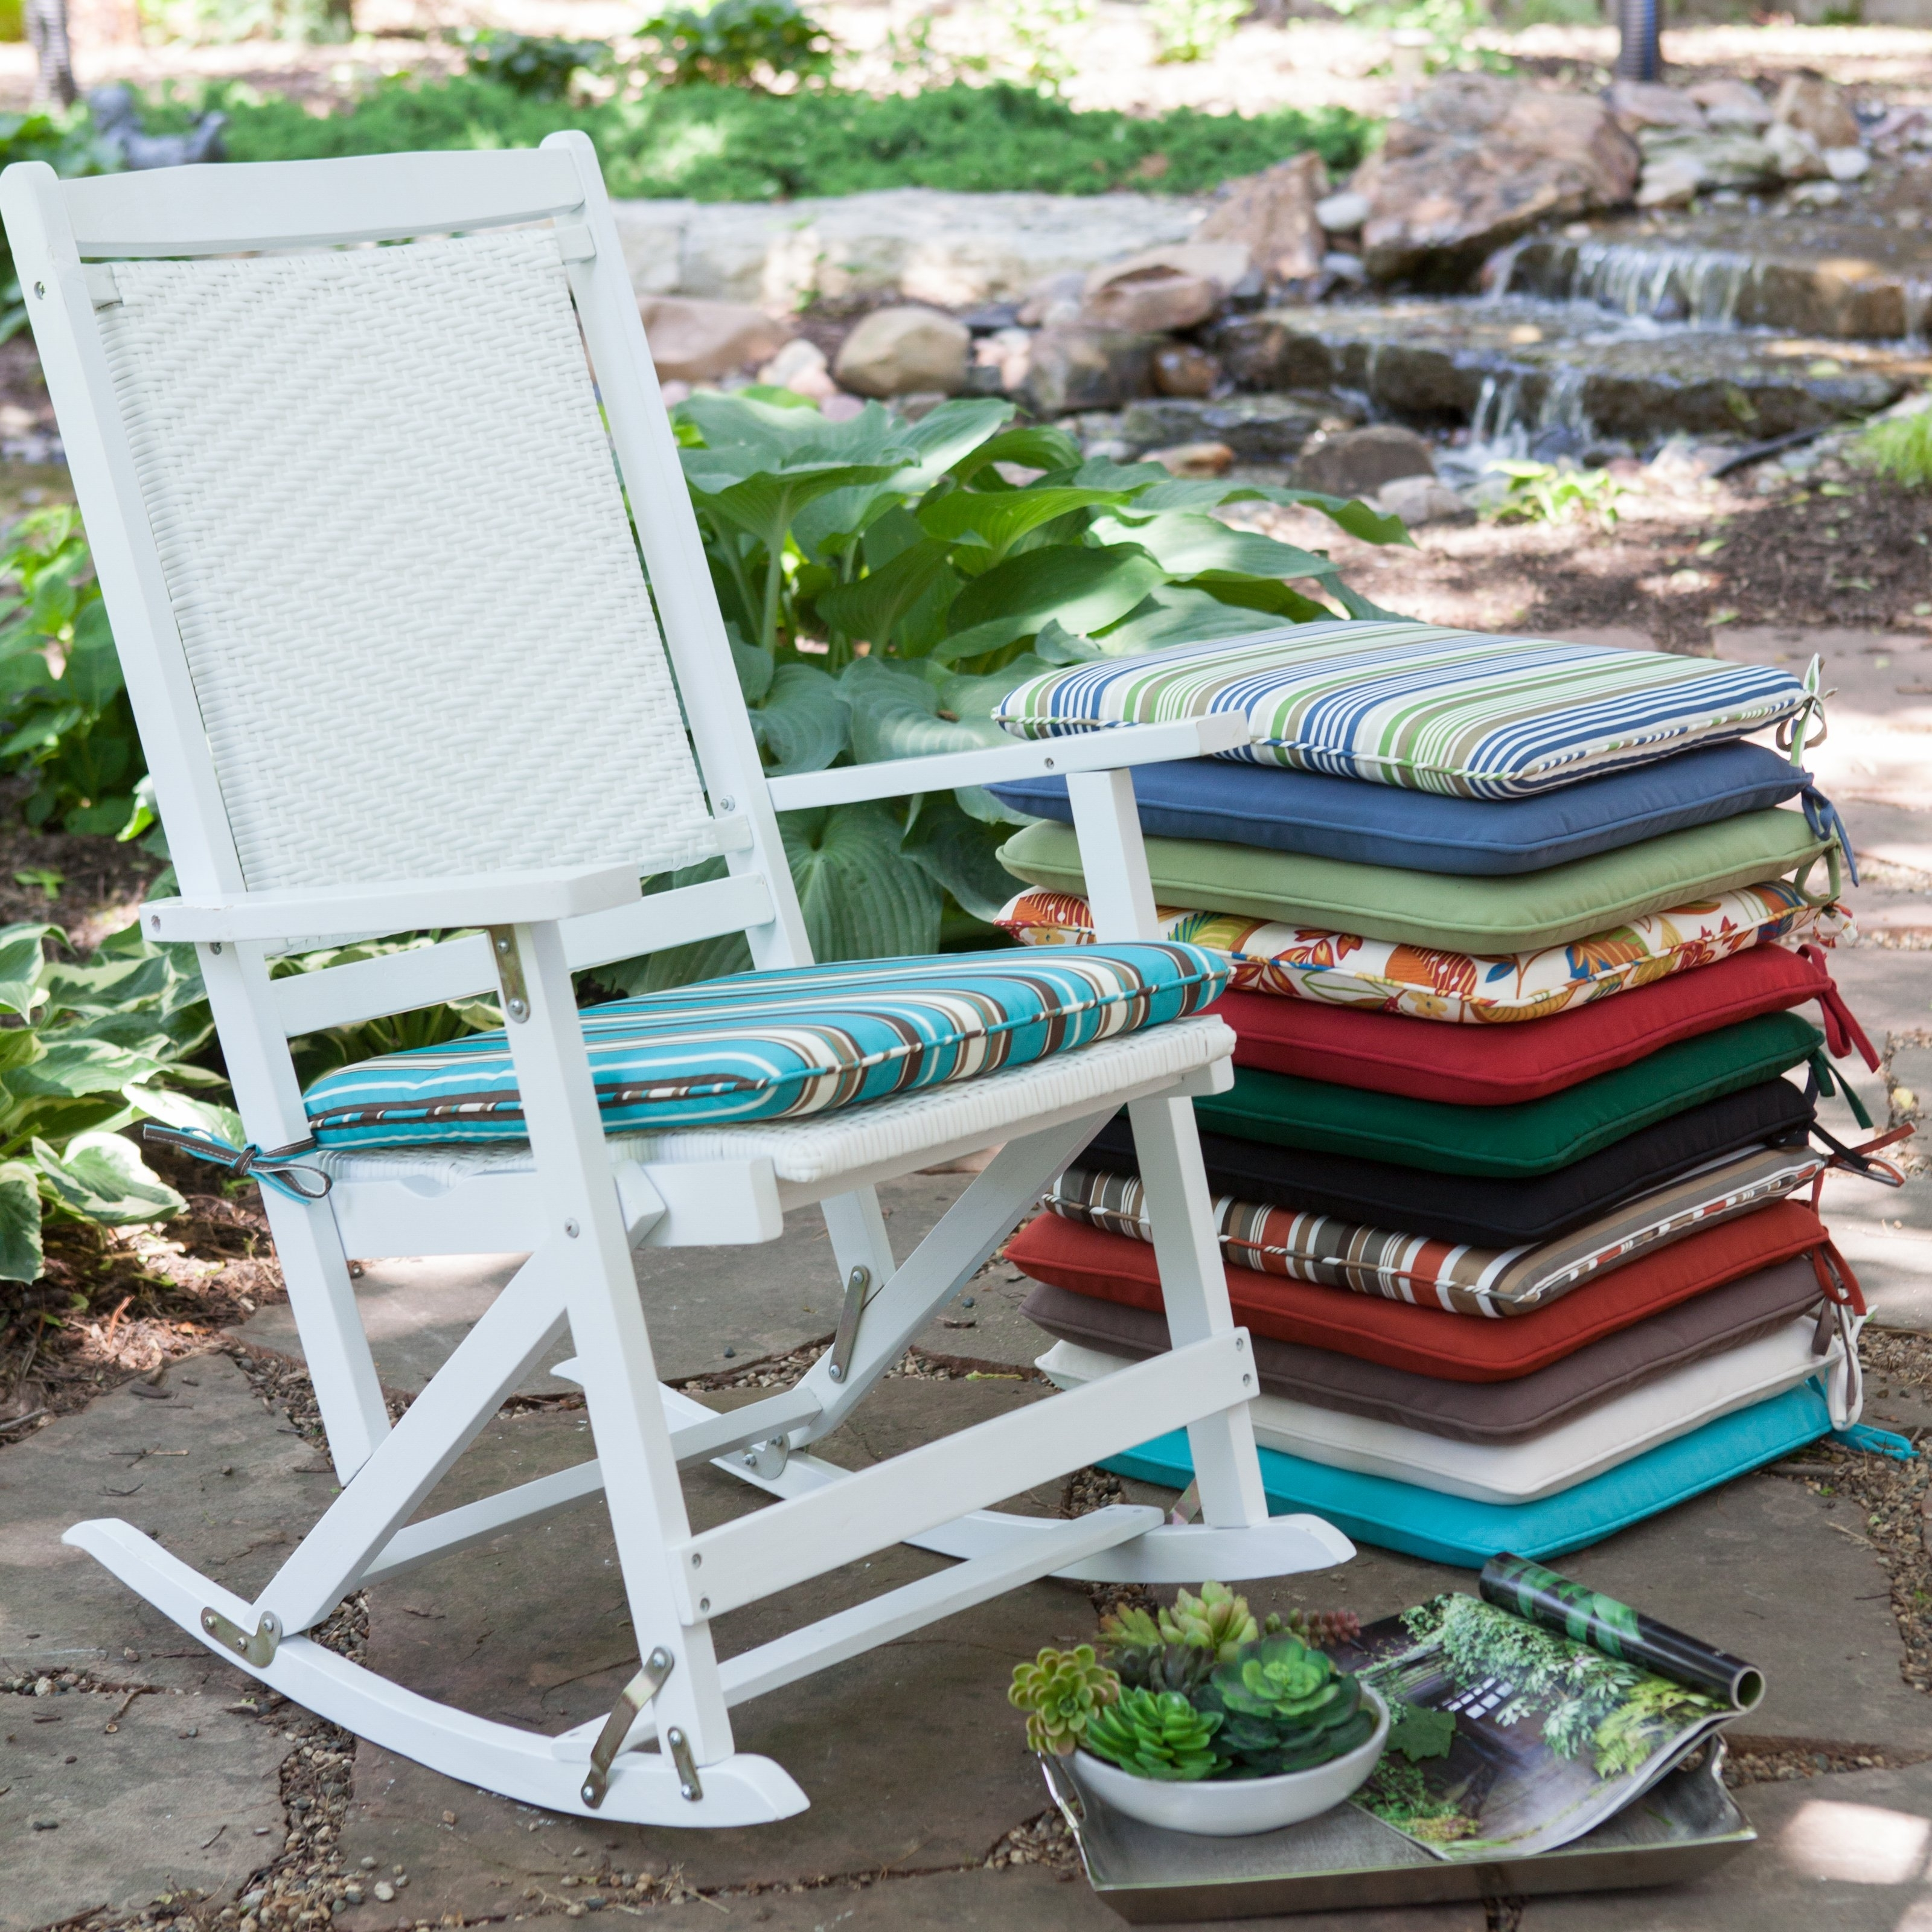 Fashionable Patio Rocking Chairs With Cushions With Regard To Stunning Sunbrella Patio Chair Cushions Outdoor Patio Rocking Chair (View 13 of 15)